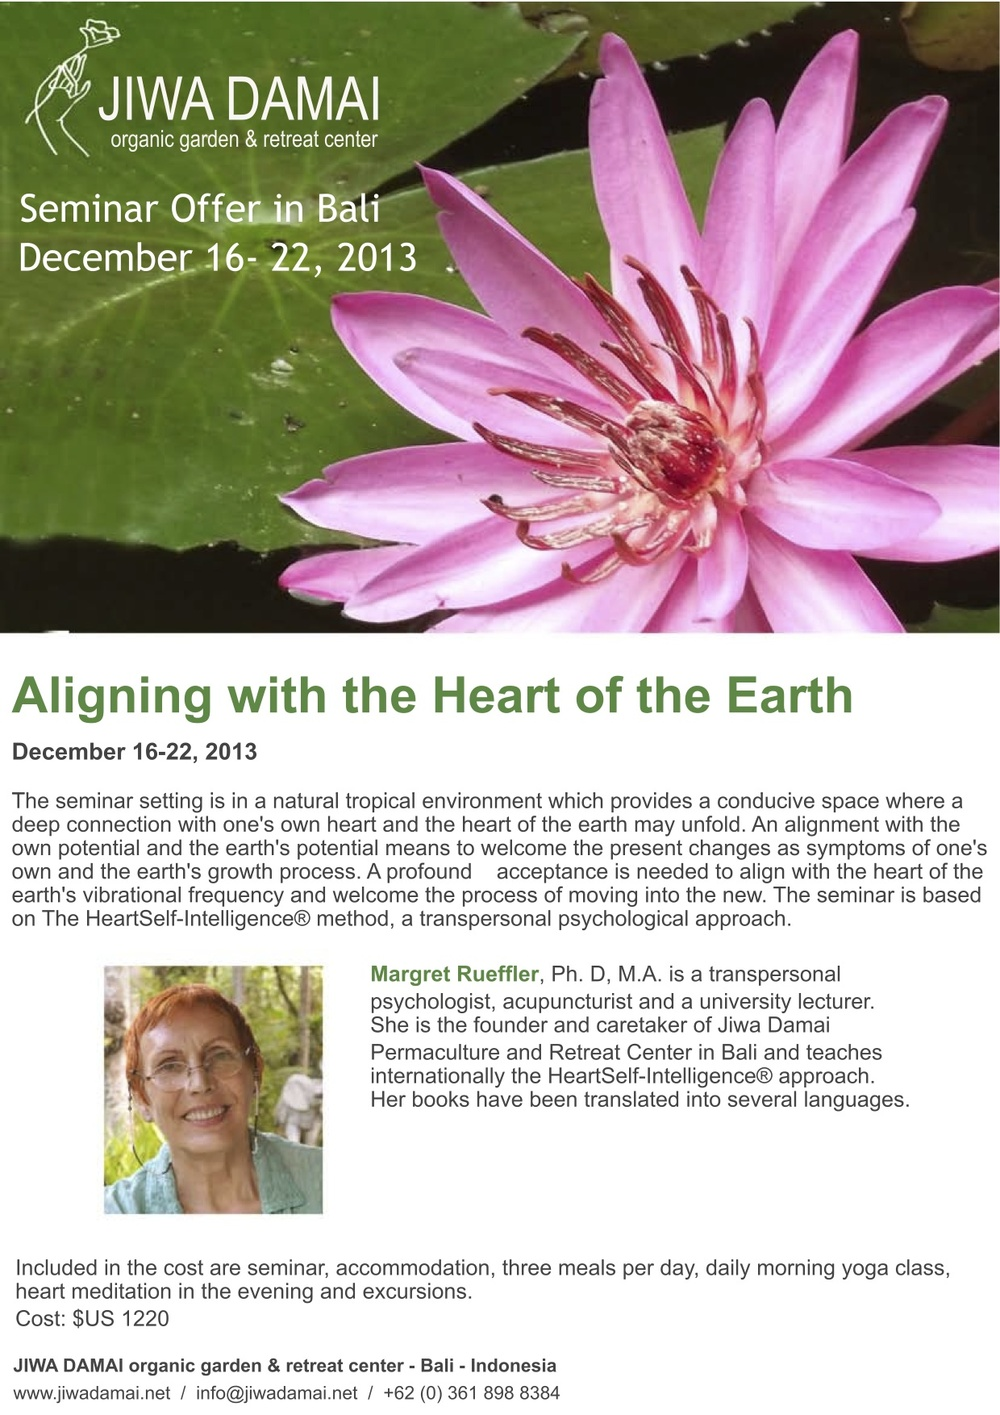 Aligning with the heart of the earth_21.9.13_MAIL Kopie